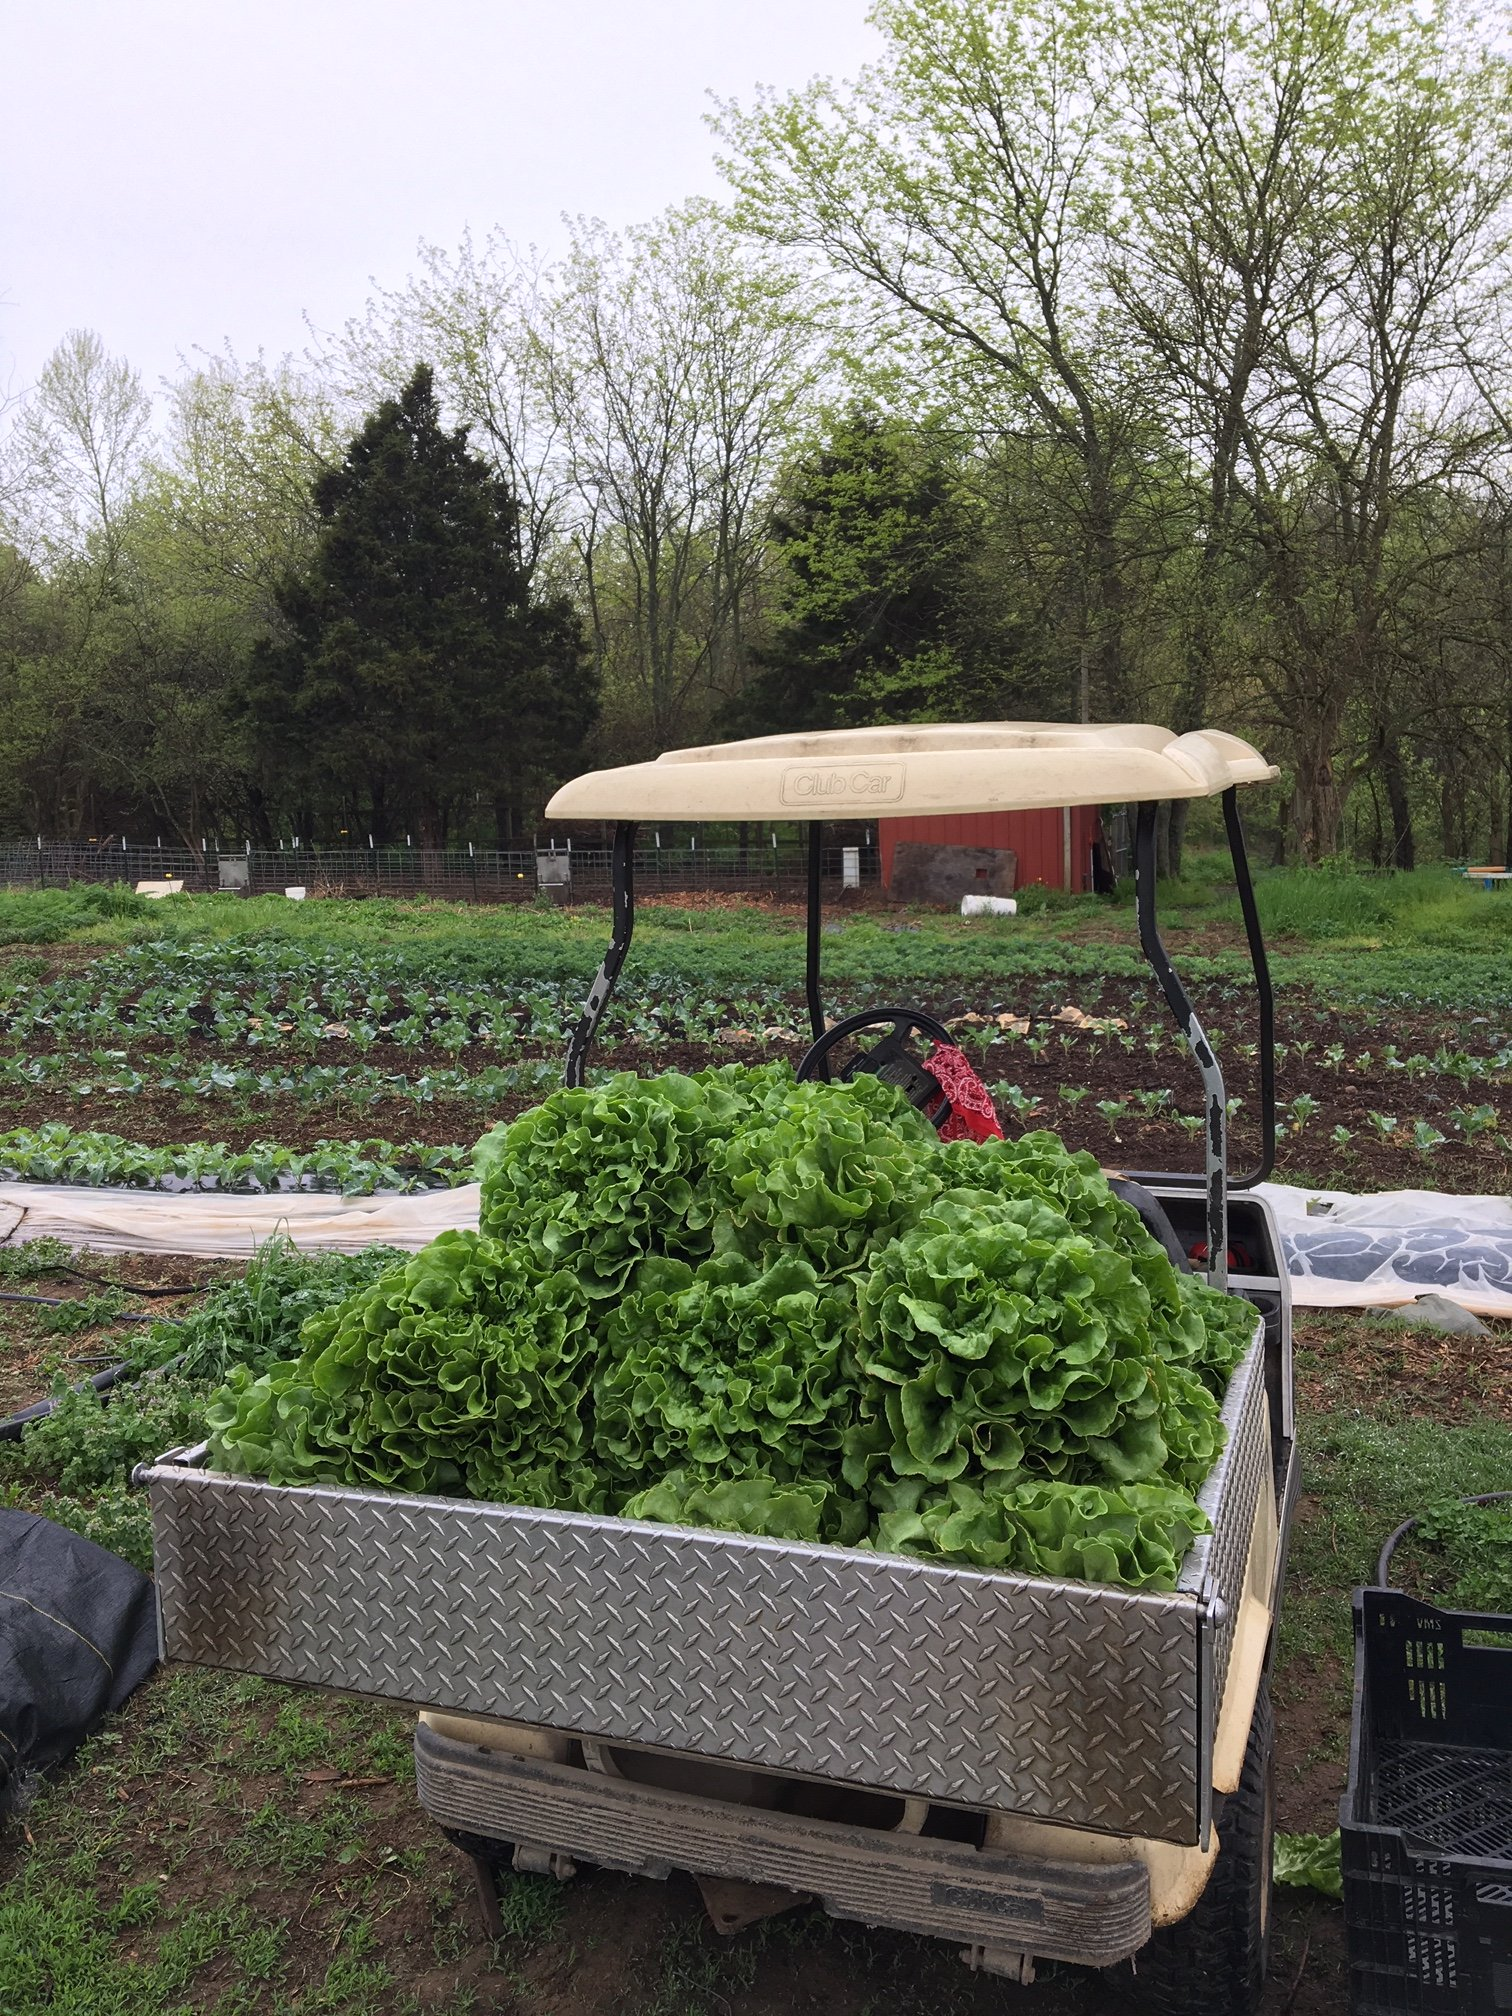 Dinner on the Farm! for May 7, 2019